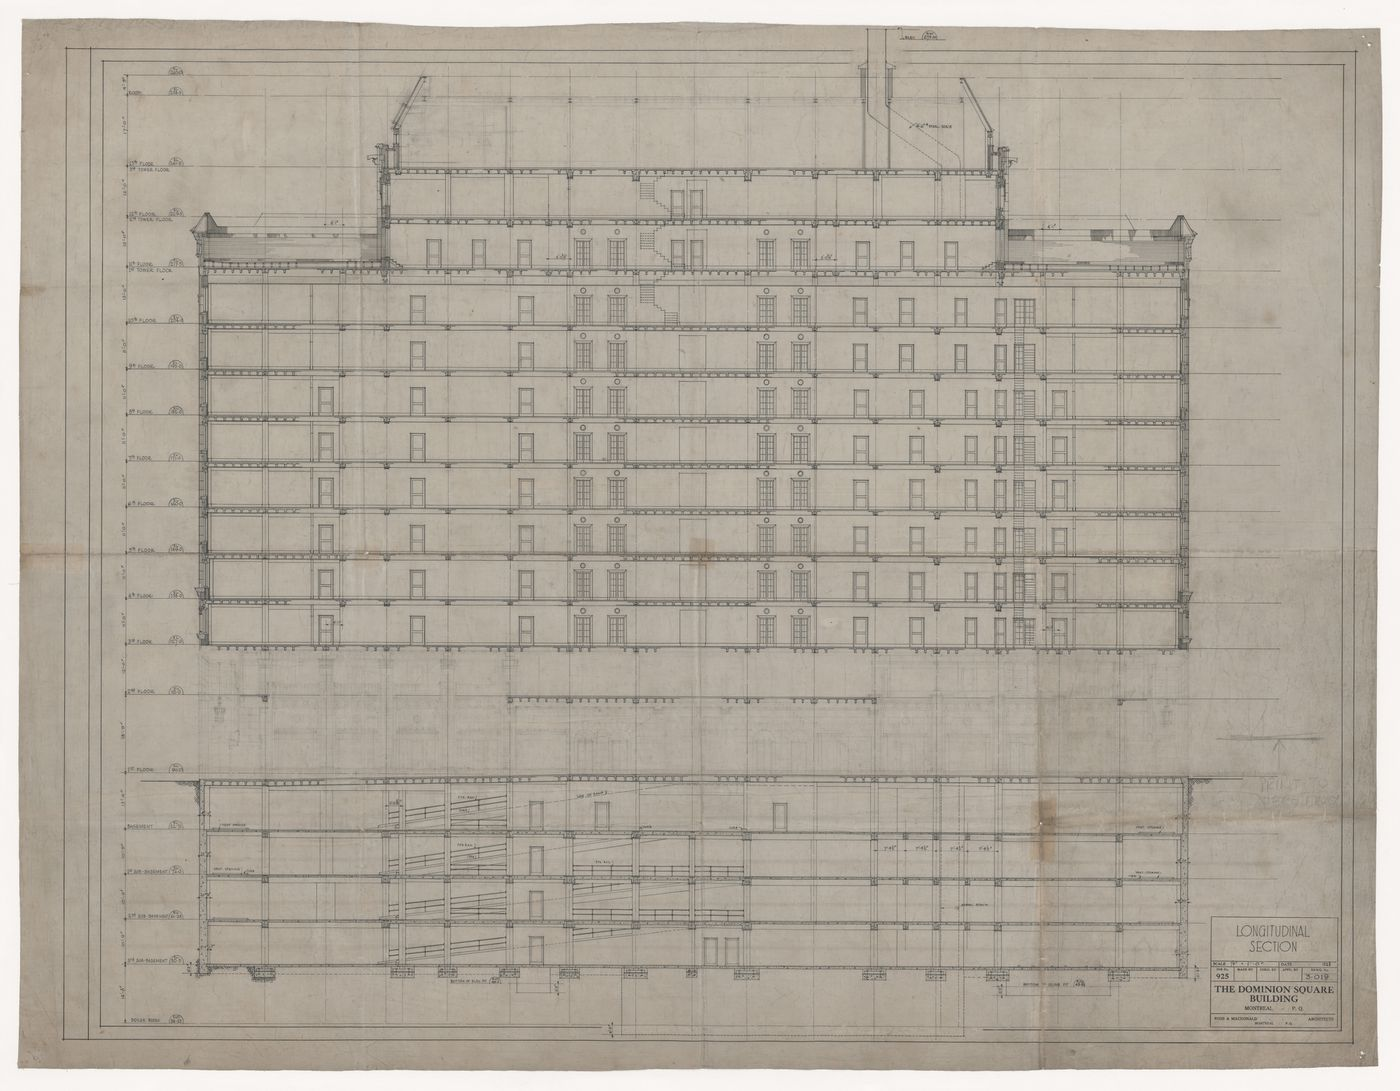 Longitudinal section for Dominion Square Building, Montreal, Québec